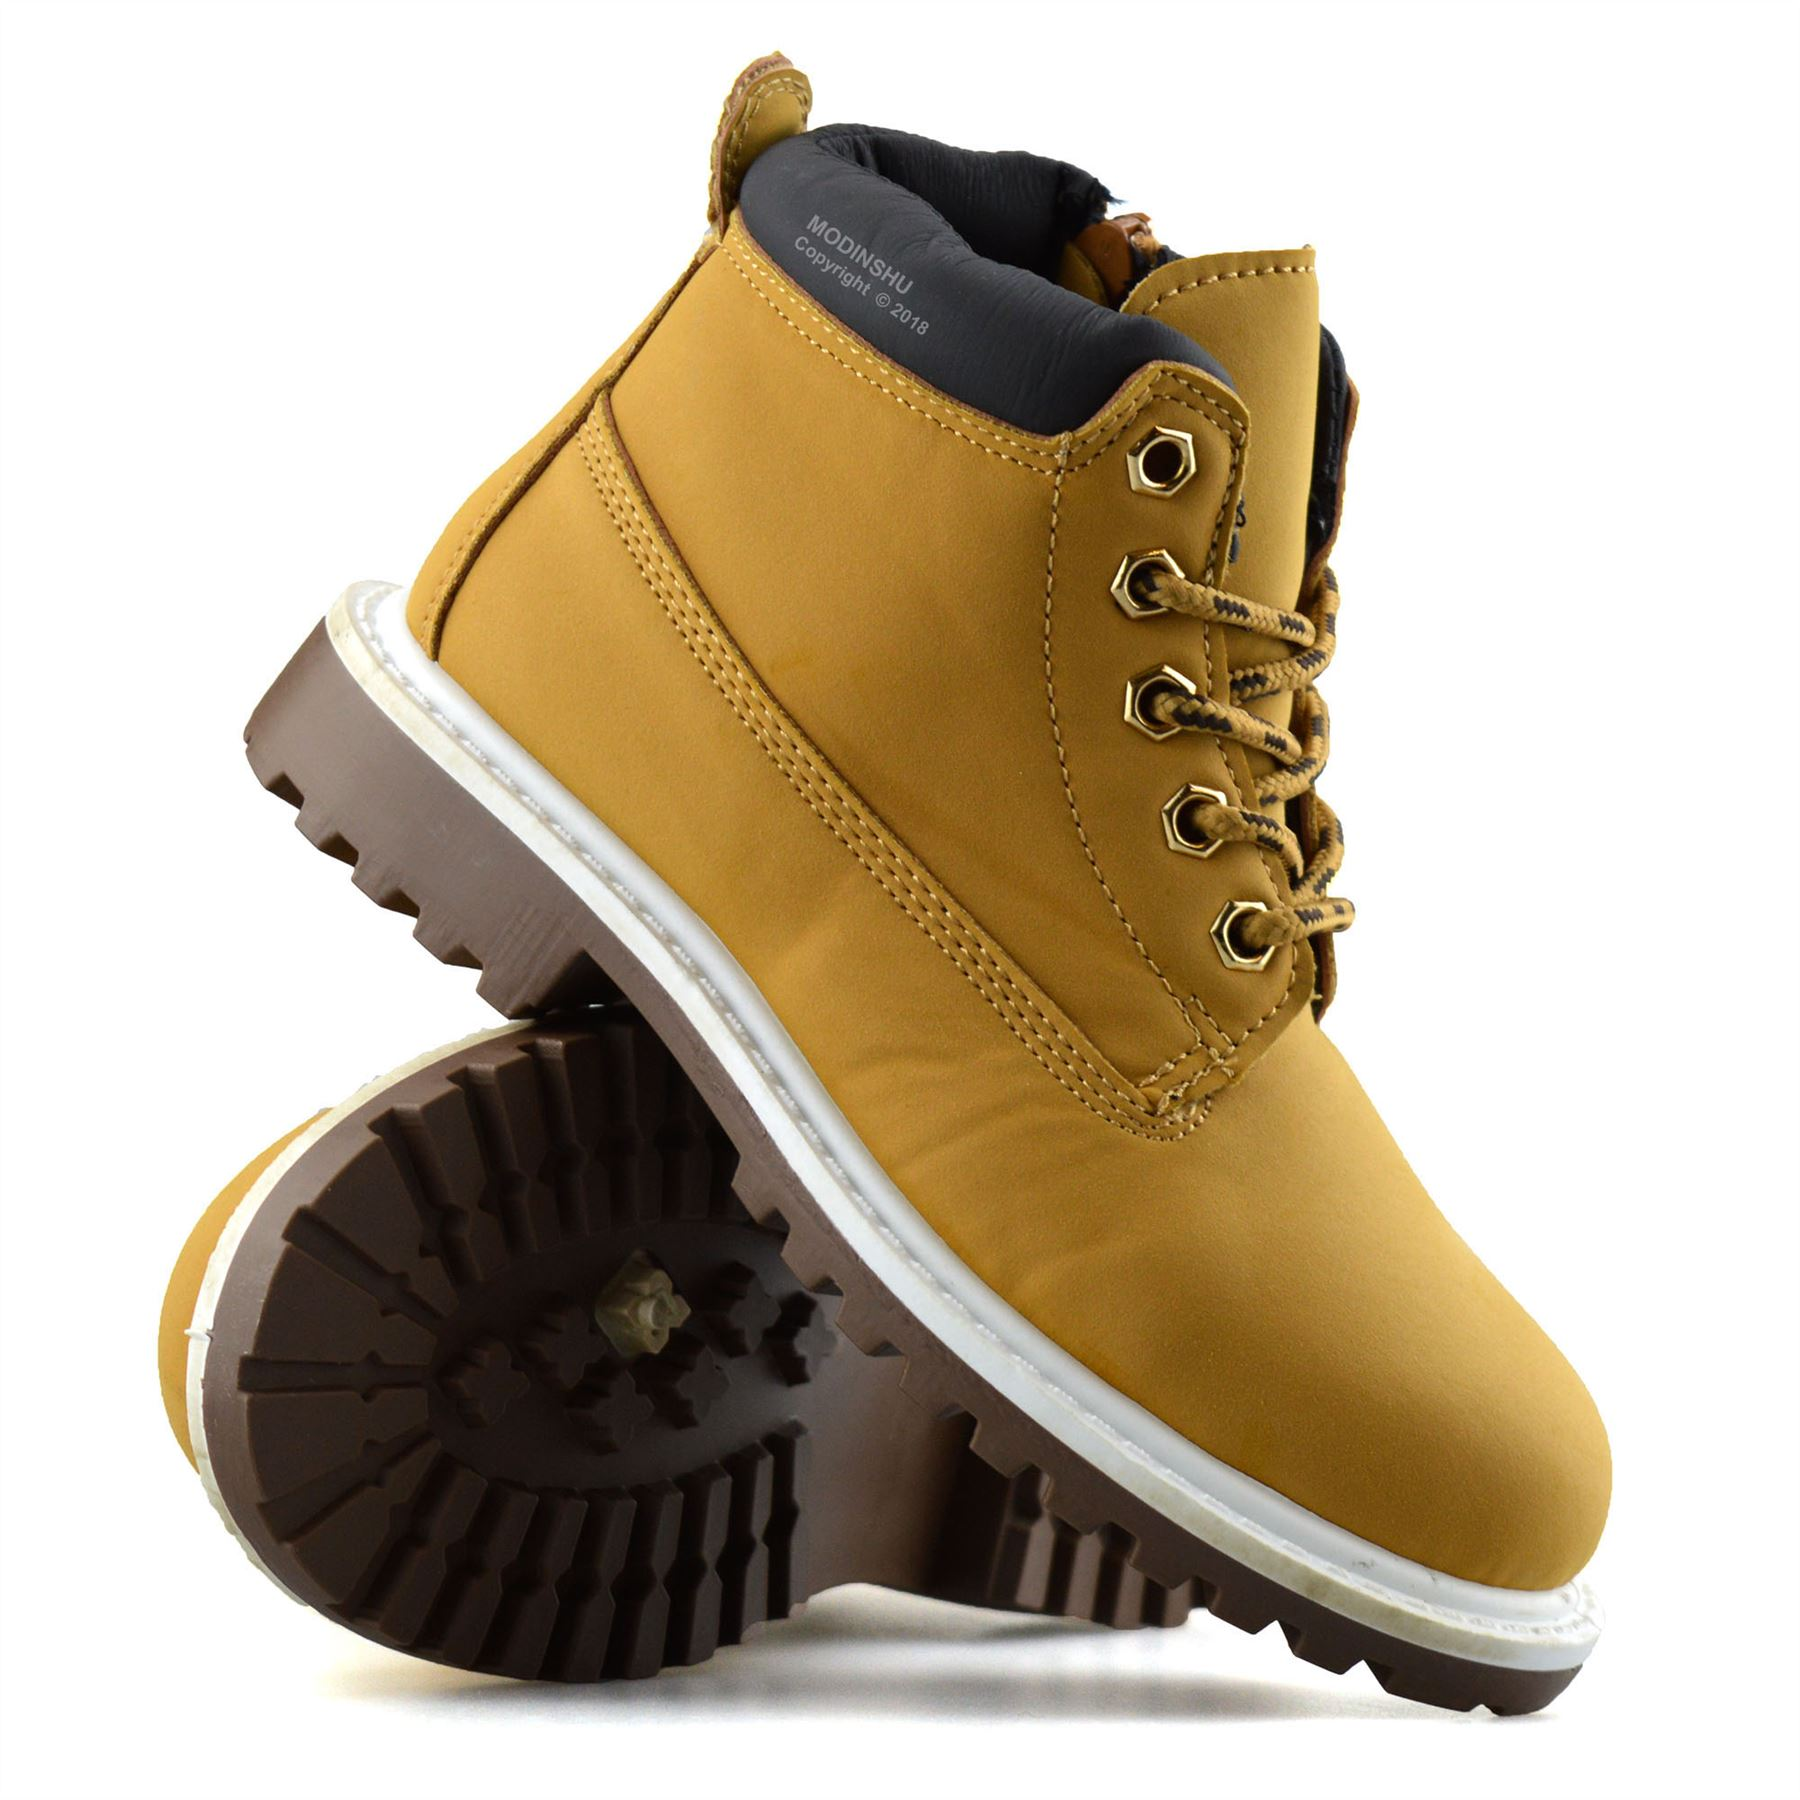 Boys-Kids-New-Casual-Zip-Lace-Up-Winter-Walking-Ankle-Boots-Trainers-Shoes-Size thumbnail 22